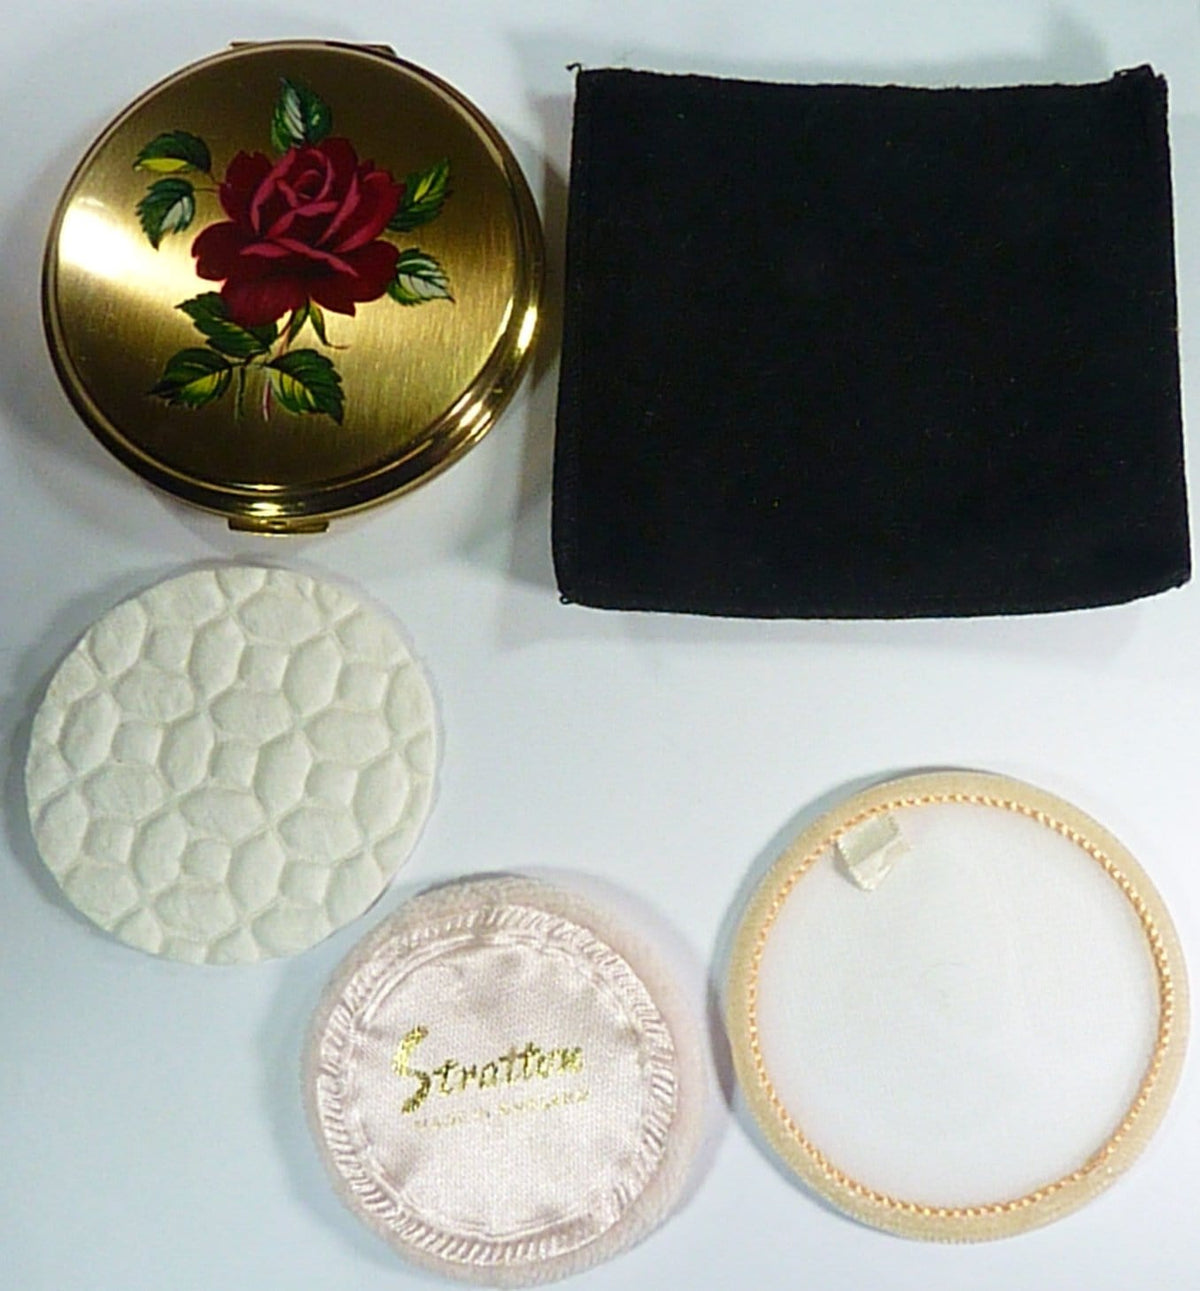 Stratton Powder Mirror Compact With Original Accessories